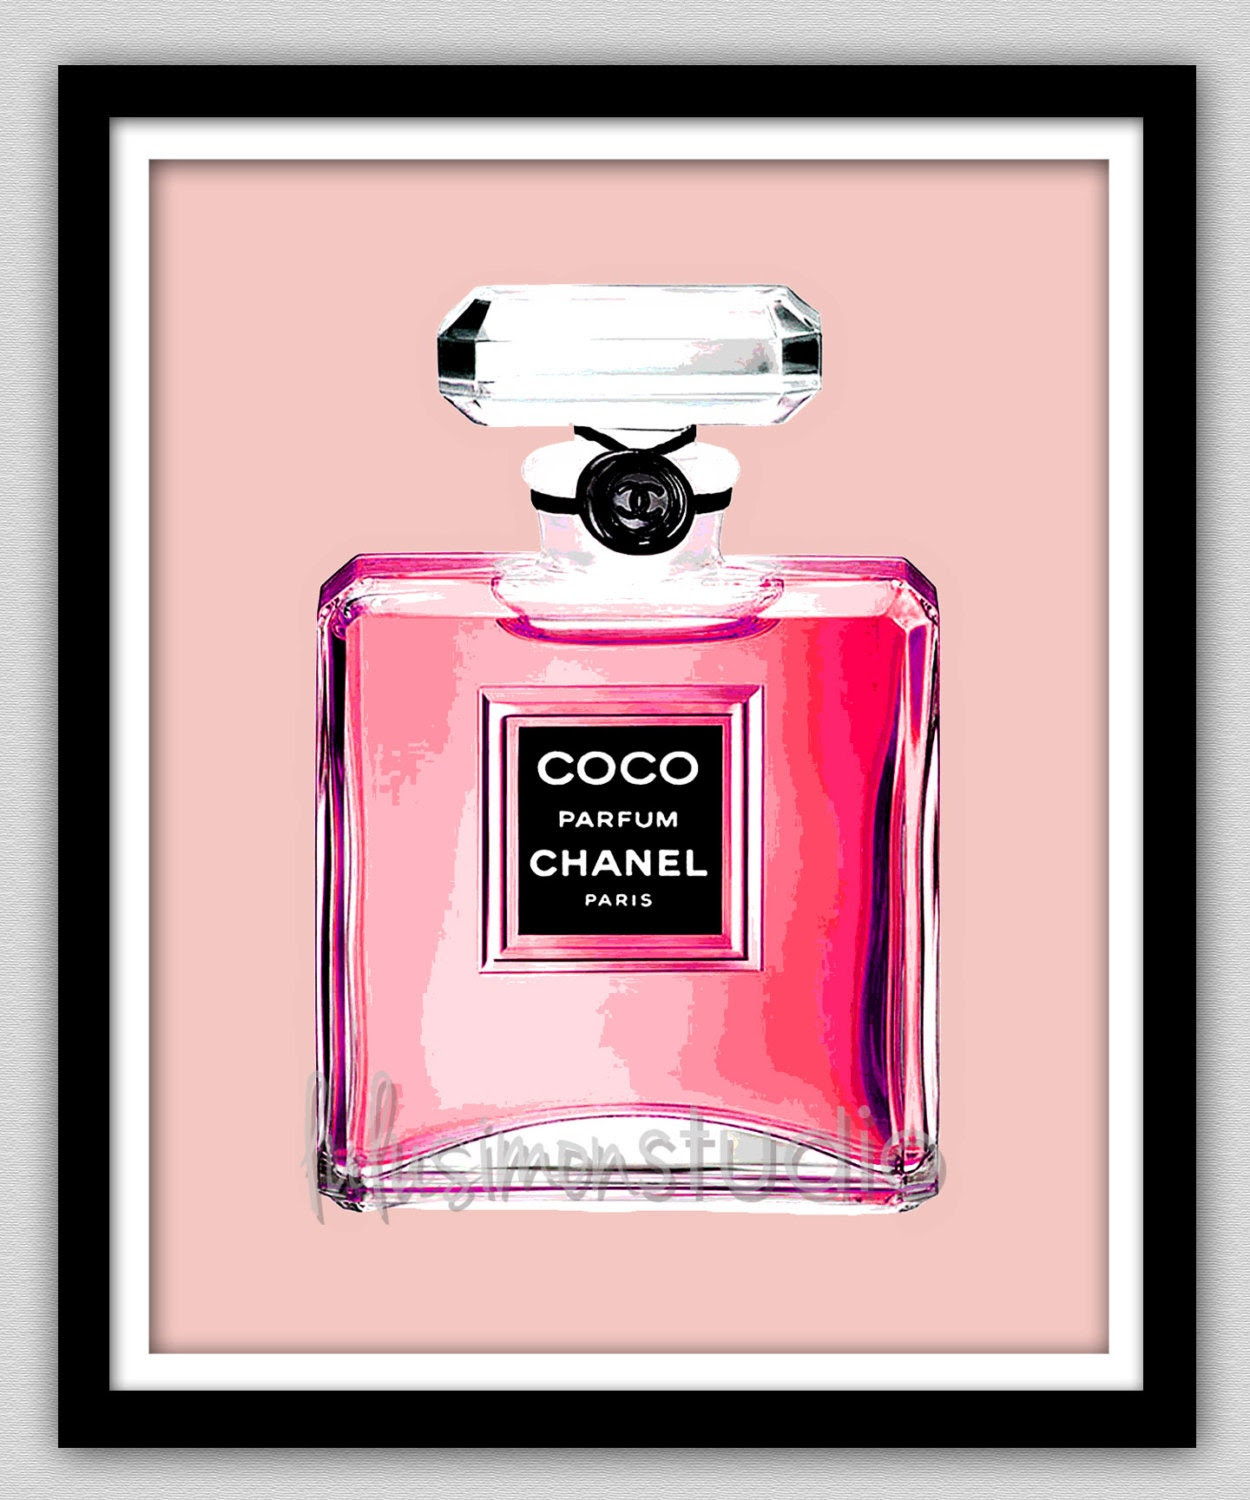 Wall Decor - Chanel - Chanel Print - Modern Home Decor - Chanel Perfume - Home Decor - Chanel Wall Art - COCO Chanel